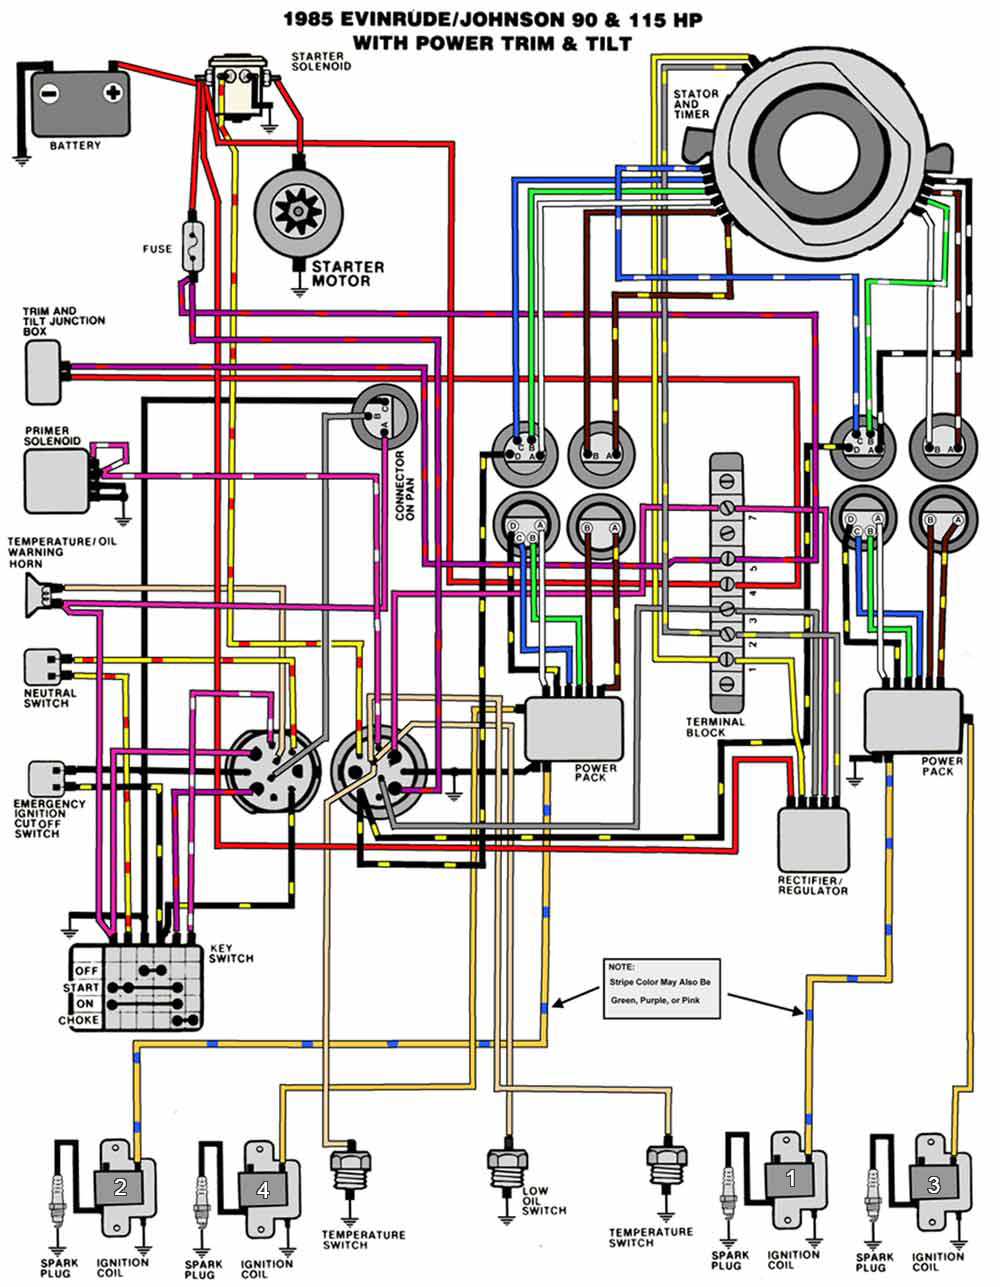 Mercury Optimax 115 Wiring Harness Guide And Troubleshooting Of 1979 Outboard Internal Diagram Diagrams Img Rh 2 Andreas Bolz De Mgb